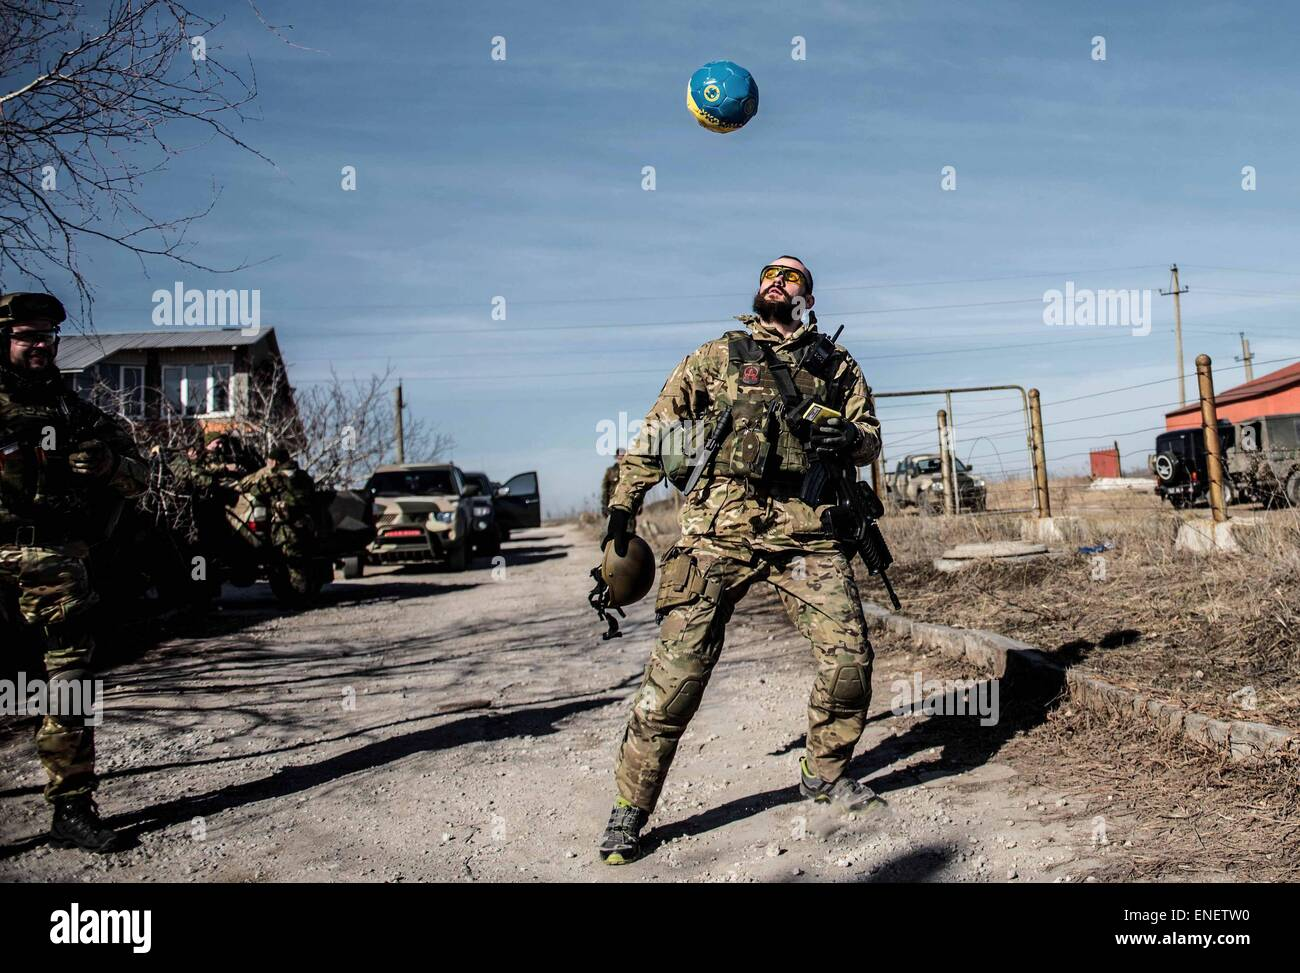 A fighter from the Azov battalion plays football near the front line in Shyrokine, ukraine. - Stock Image